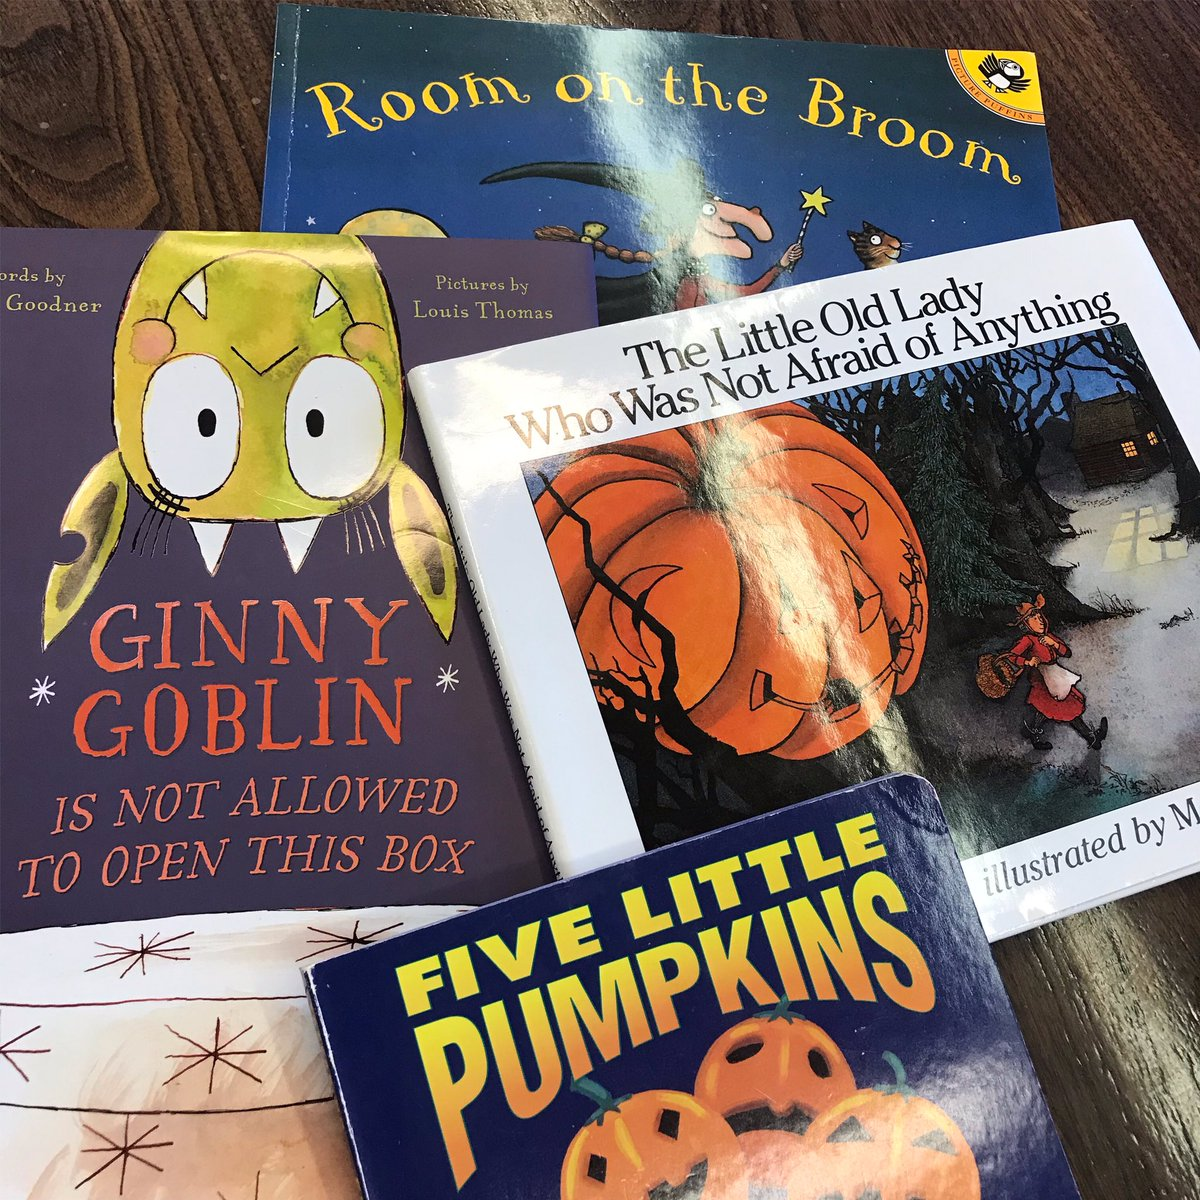 Starting my PK-5 classroom Read-a-Loud tour for October! #Halloween #FallYall #Reading 🍁👻🎃